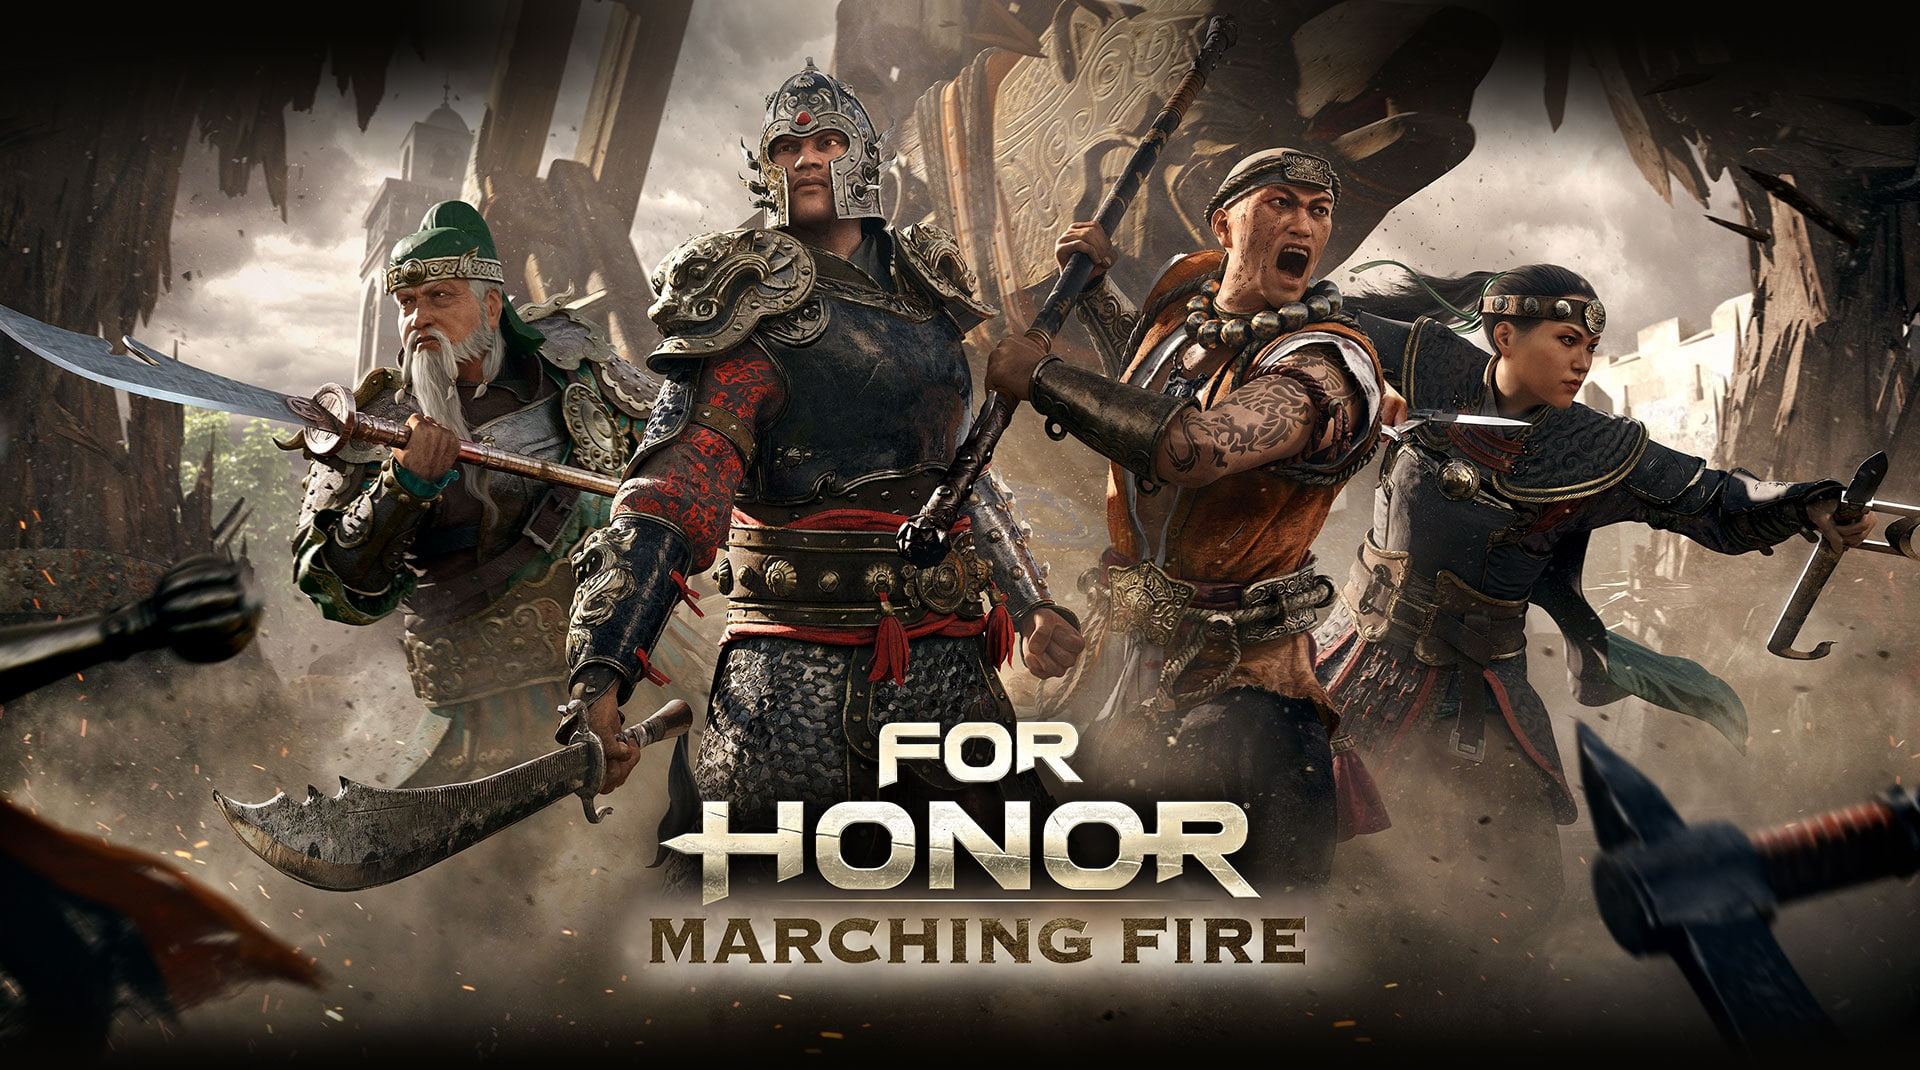 Jump Into For Honor: Marching Fire - Open Test on the 6th September